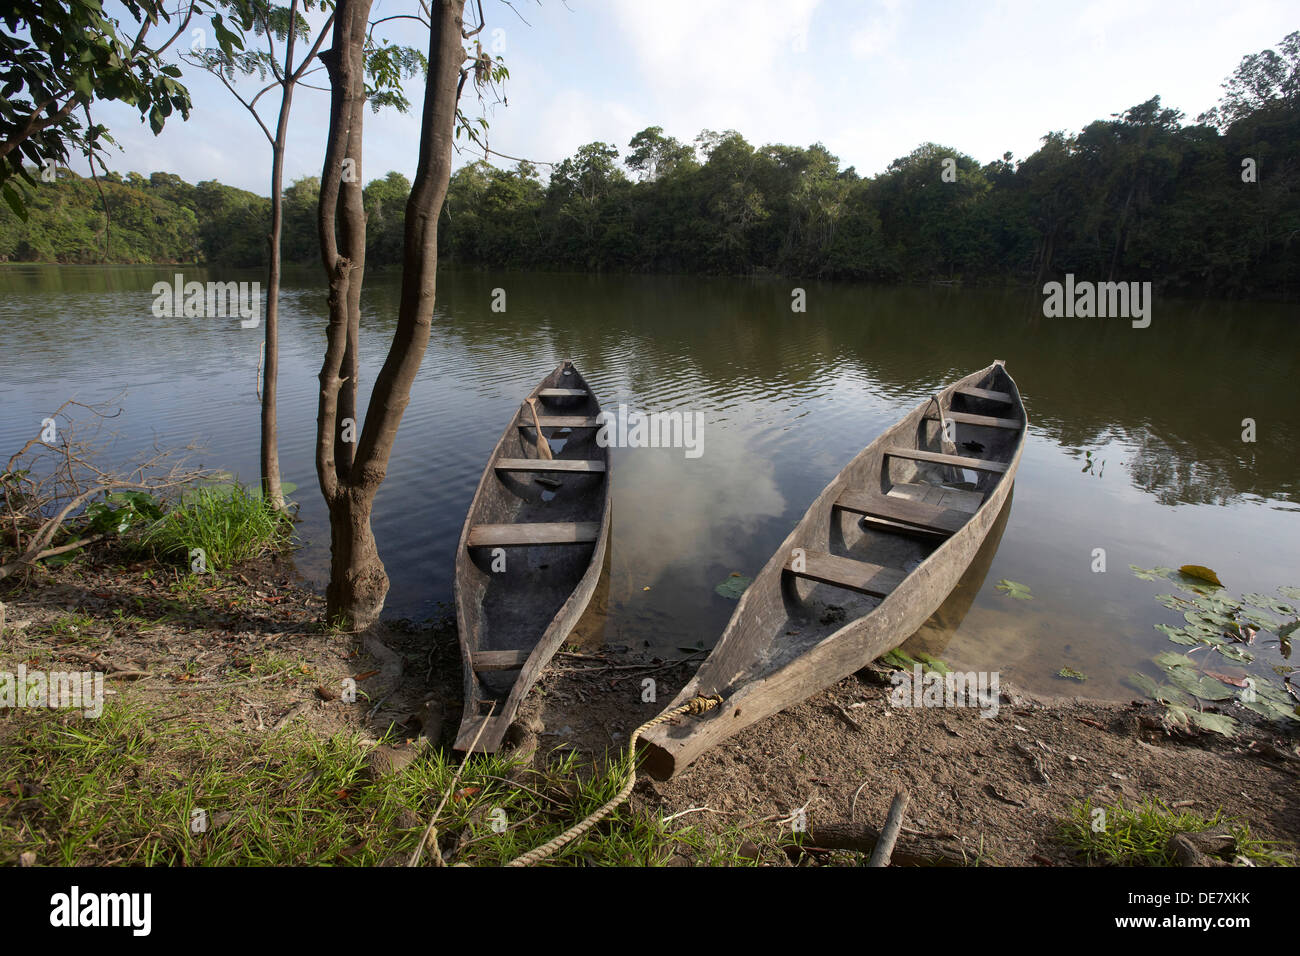 dug out canoes on an oxbow lake off the Rewa River, Rupununi, Guyana, South America - Stock Image